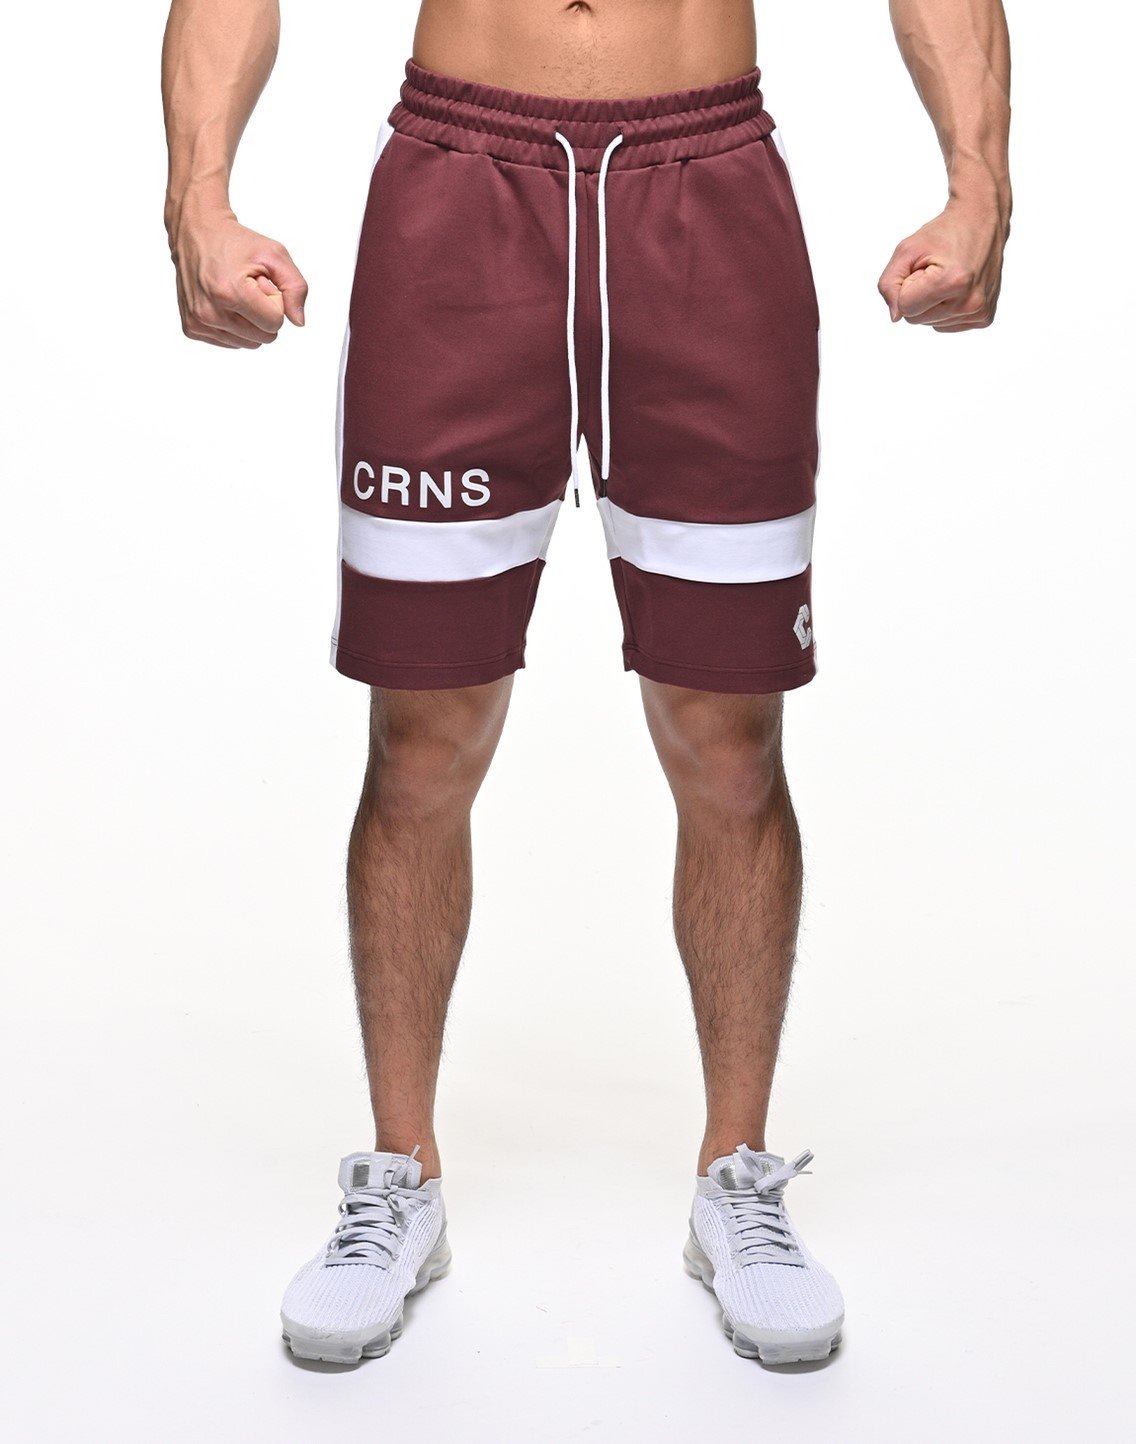 CRNS THICK LINE SHORTS【BORDEAUX】